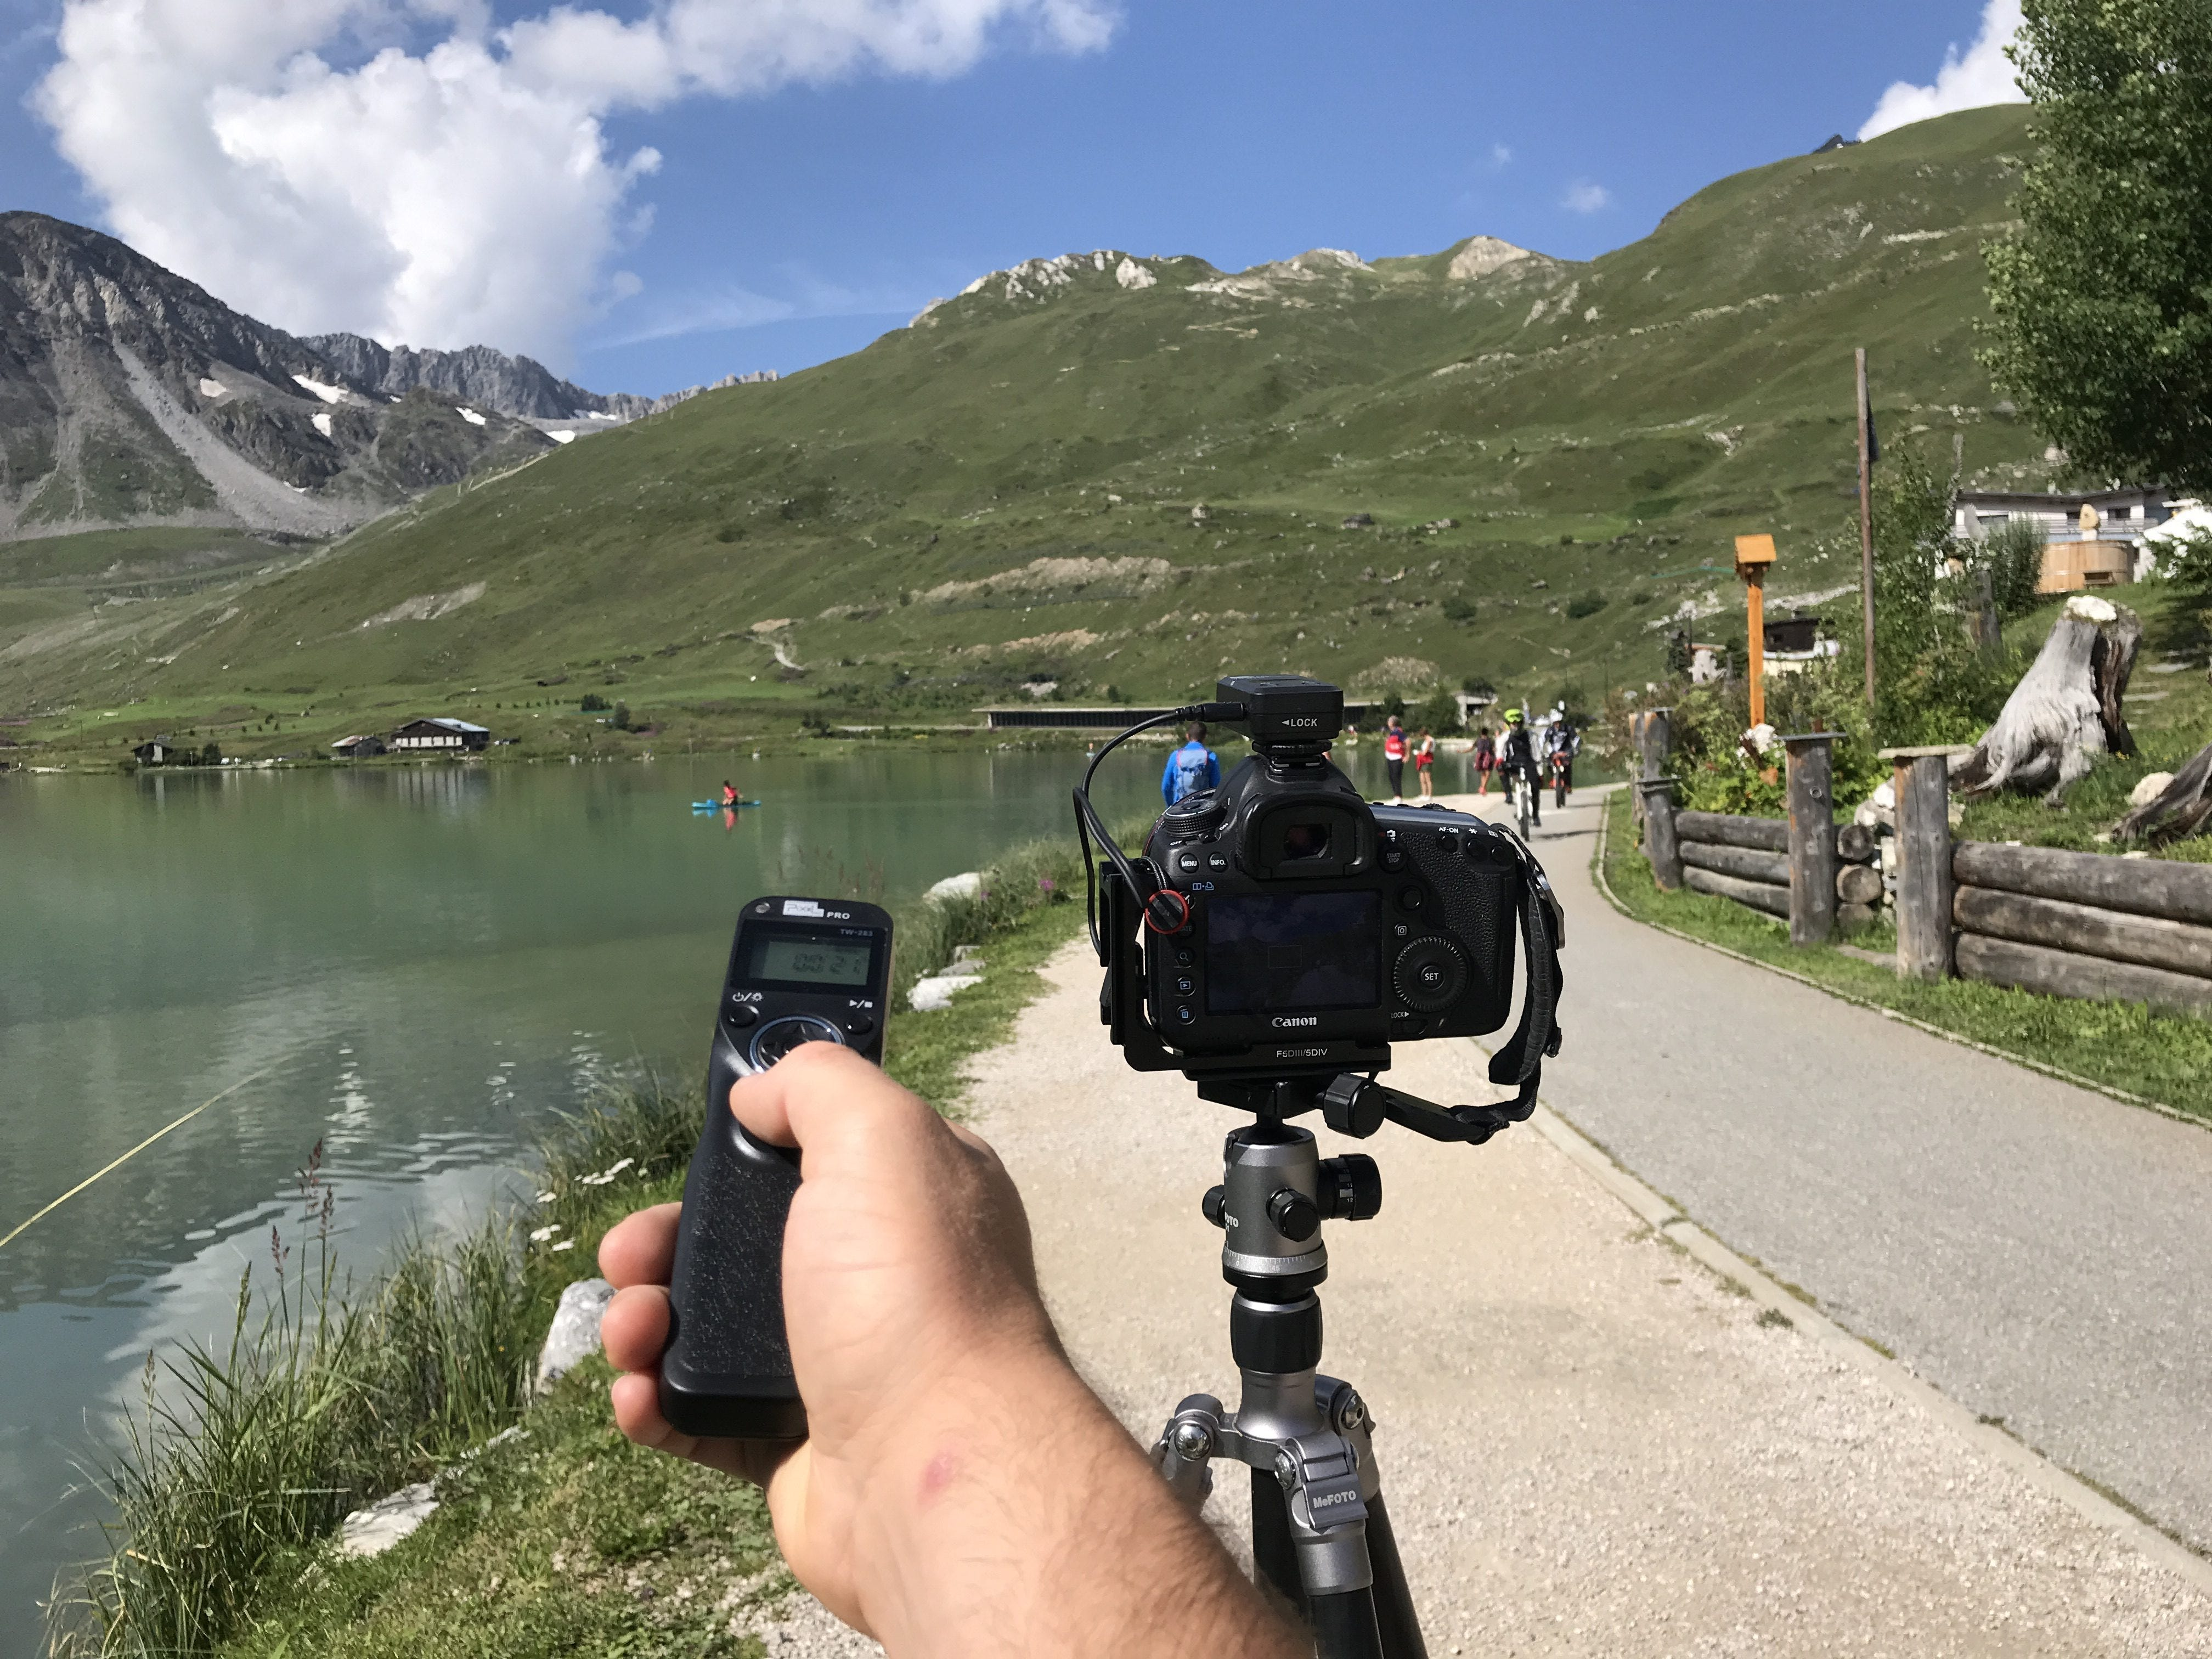 example of a wireless shutter in action in a scenic mountain area